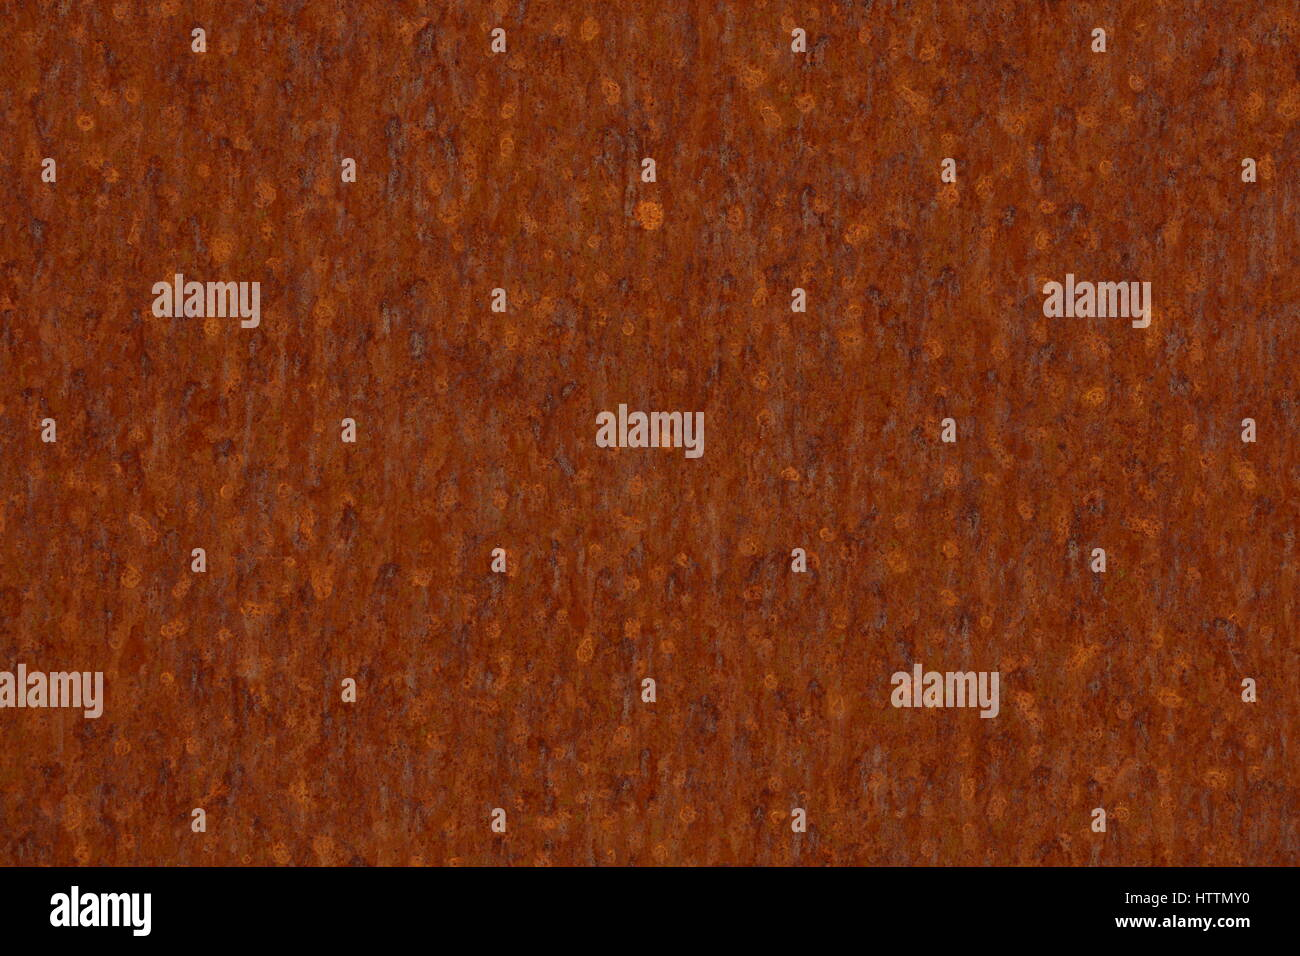 Cortenstahl Metall Schraffur Stock Photos Metall Schraffur Stock Images Alamy